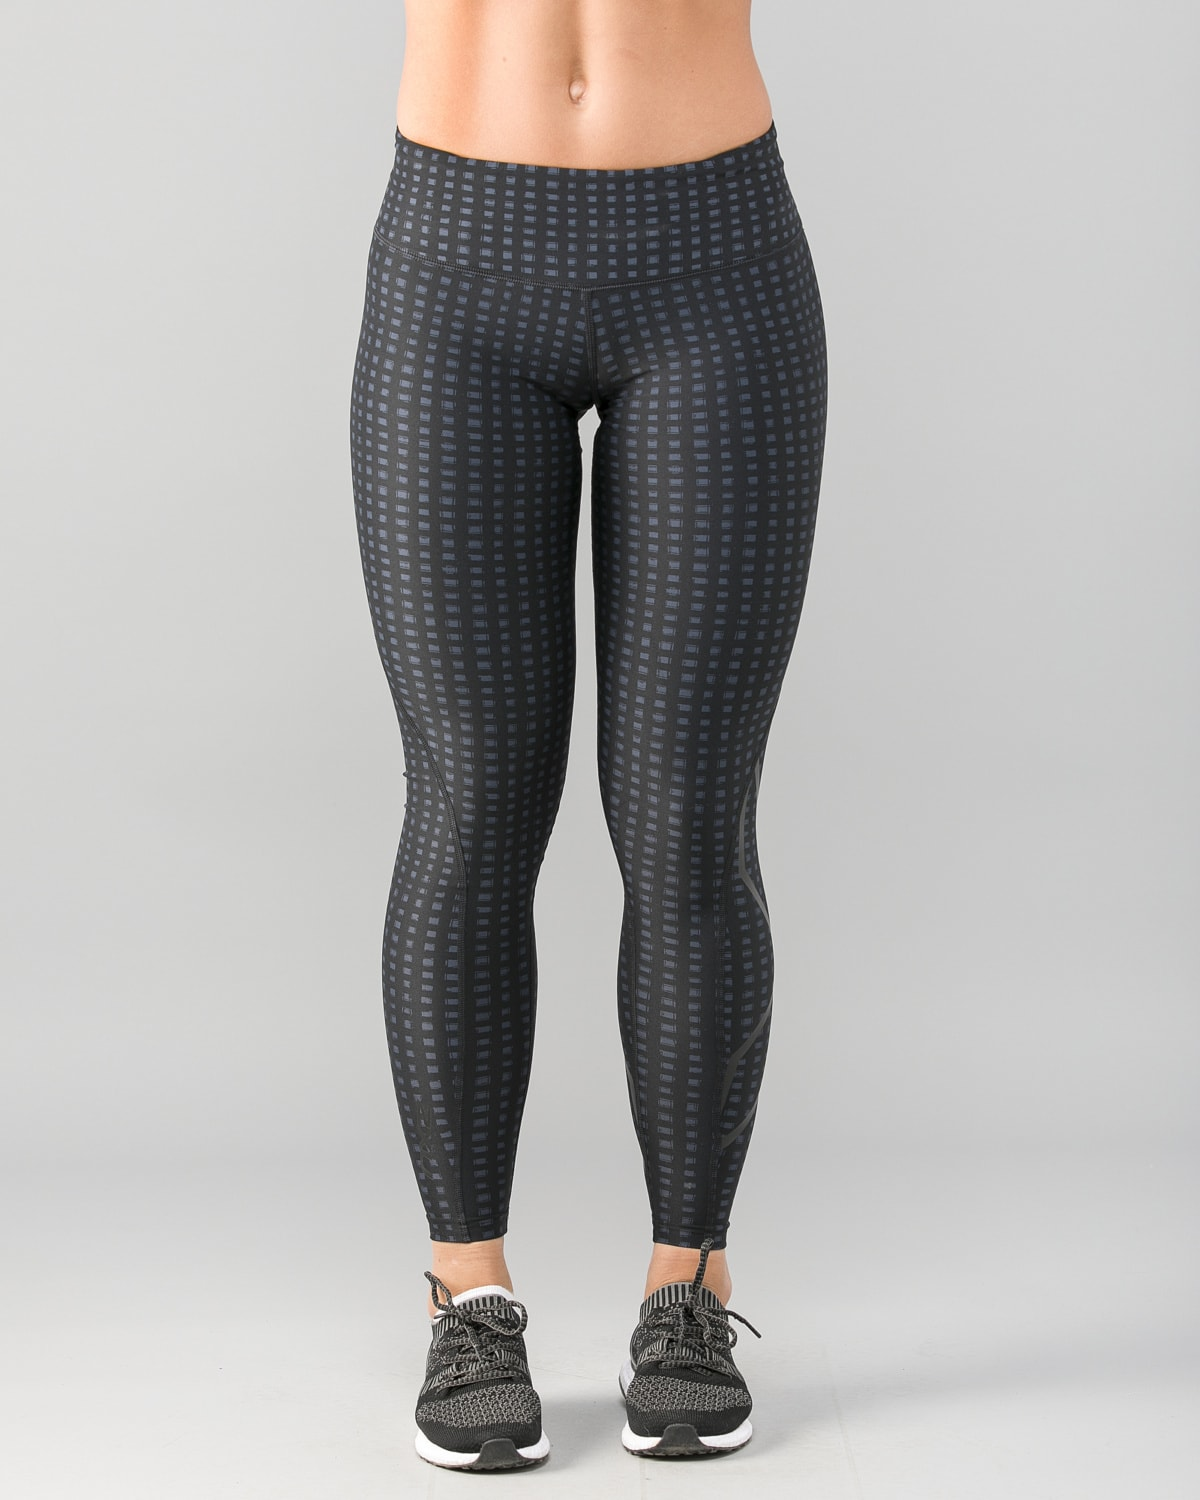 2XU-Print-Mid-Rise-Comp-Tights-W-Outer-Space-Urban-Grid-Nero